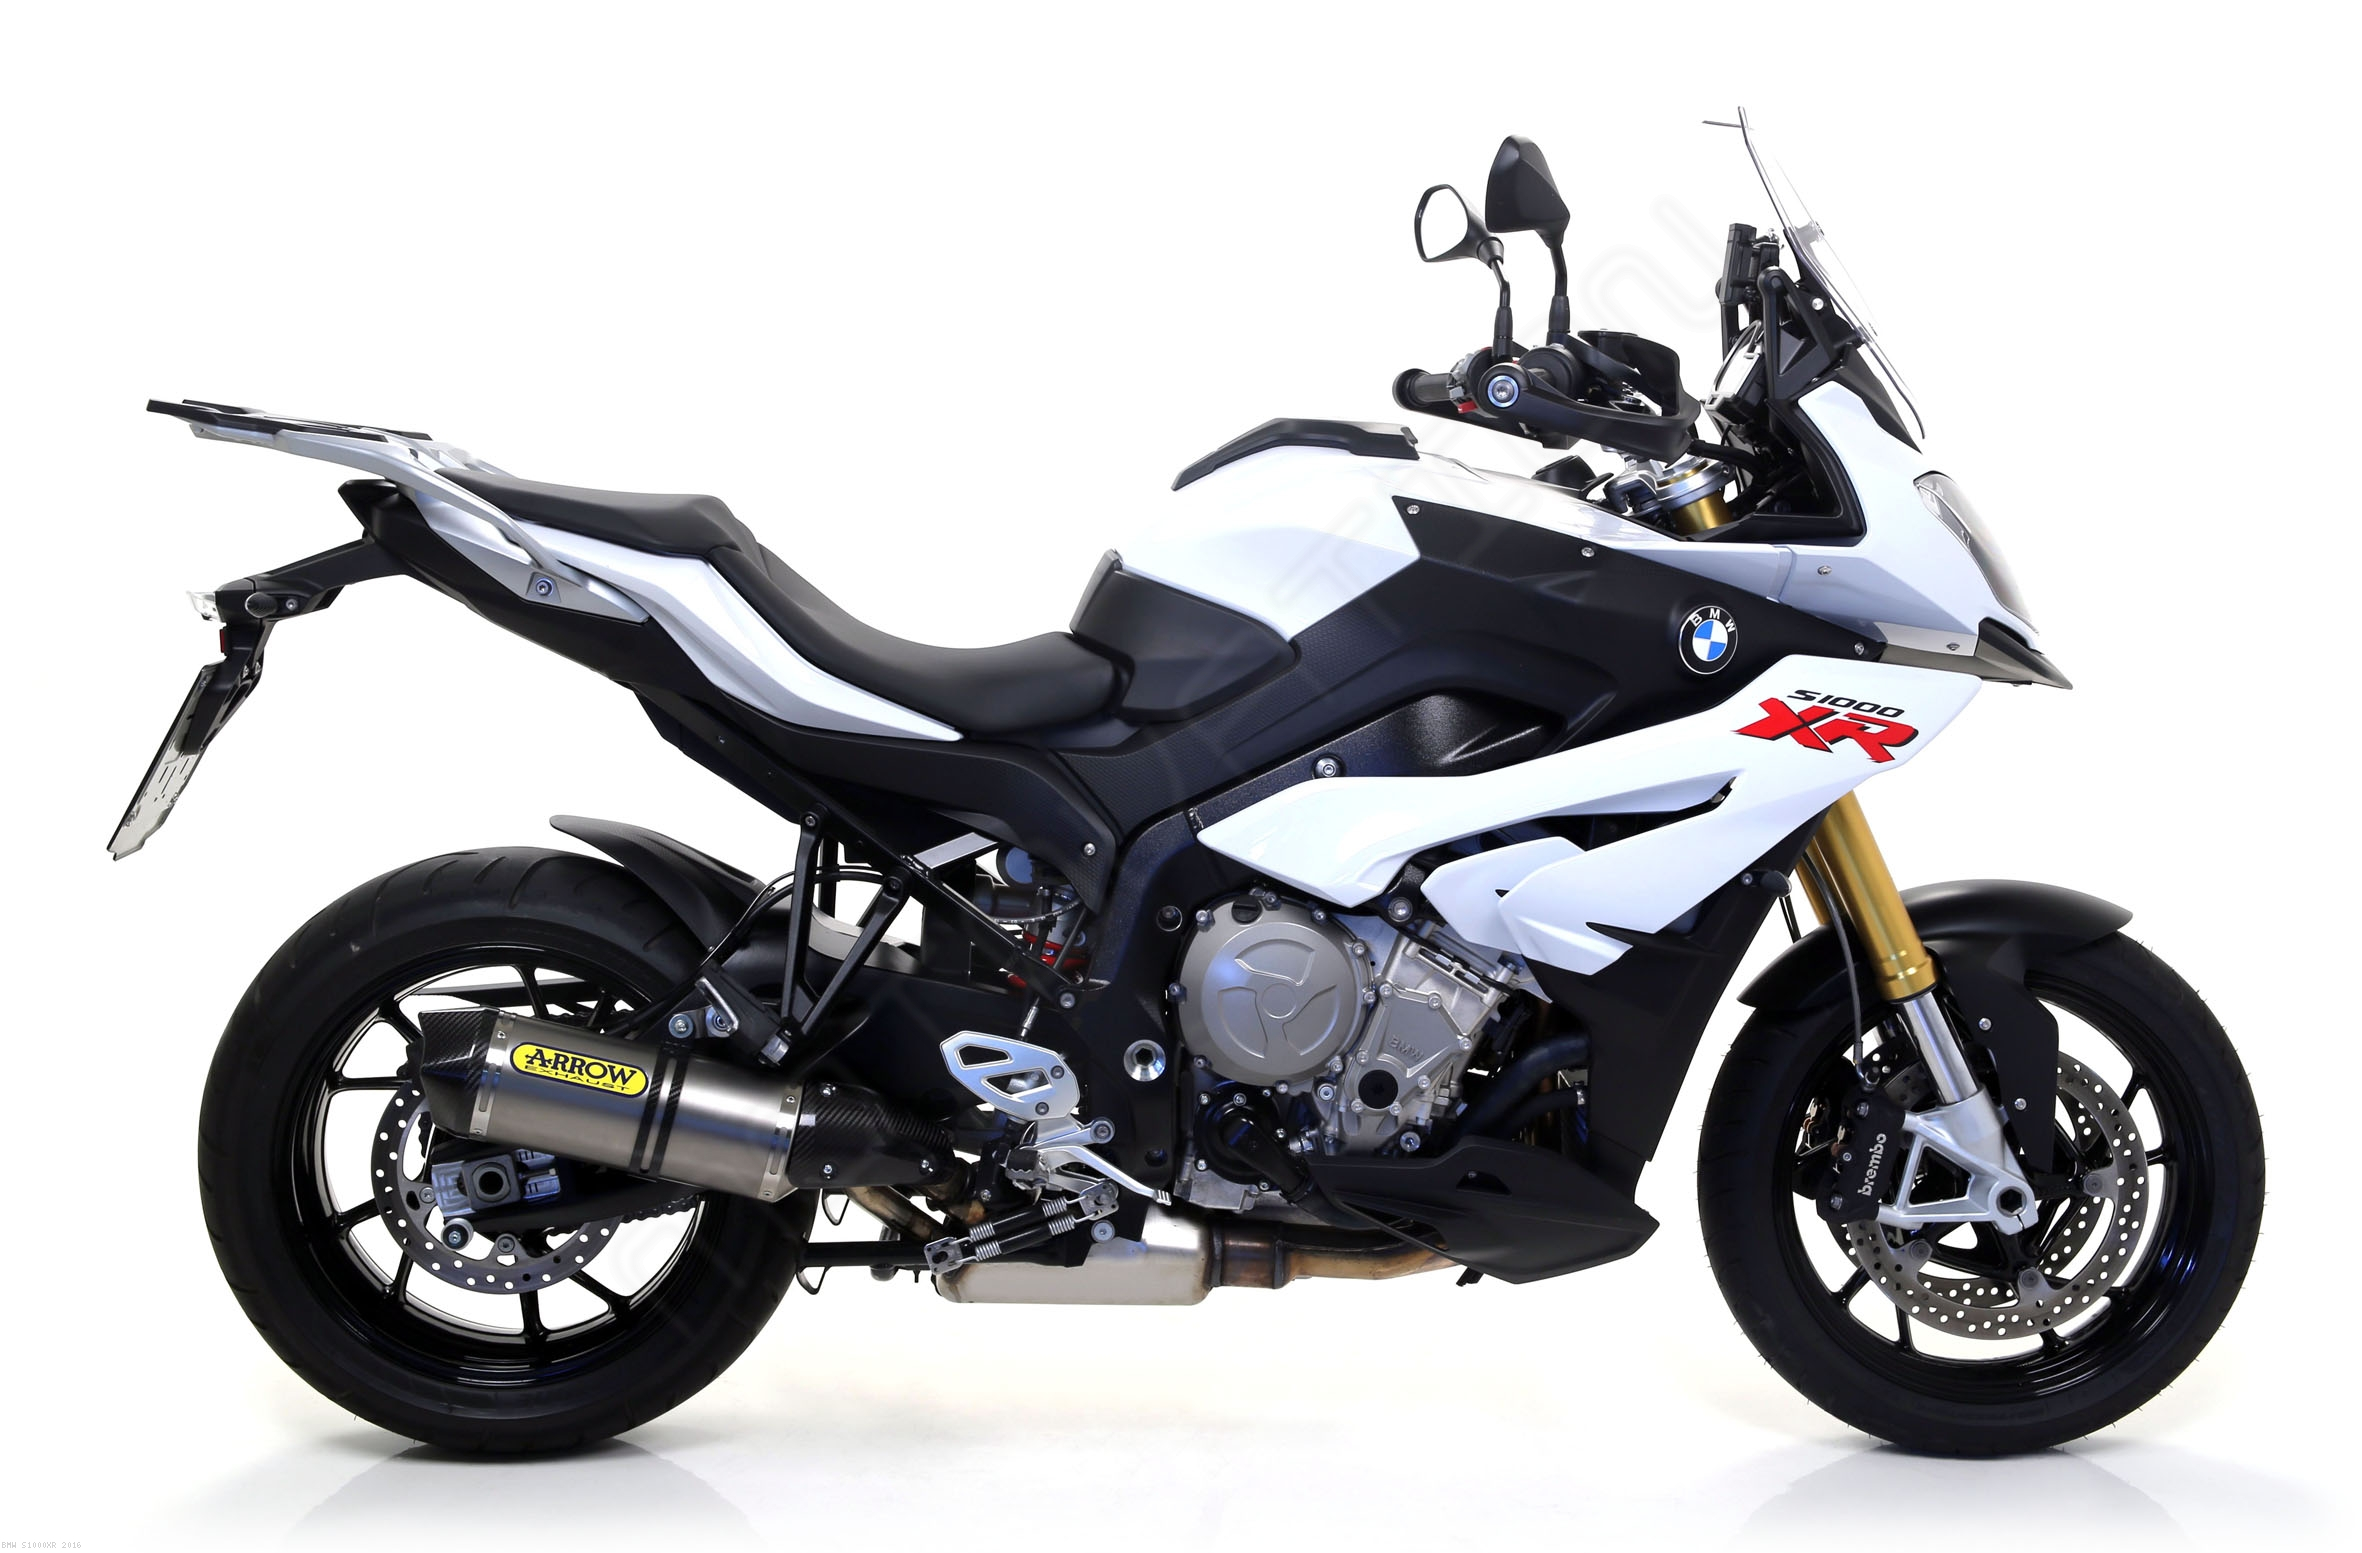 race tech exhaust by arrow bmw s1000xr 2016 71837. Black Bedroom Furniture Sets. Home Design Ideas